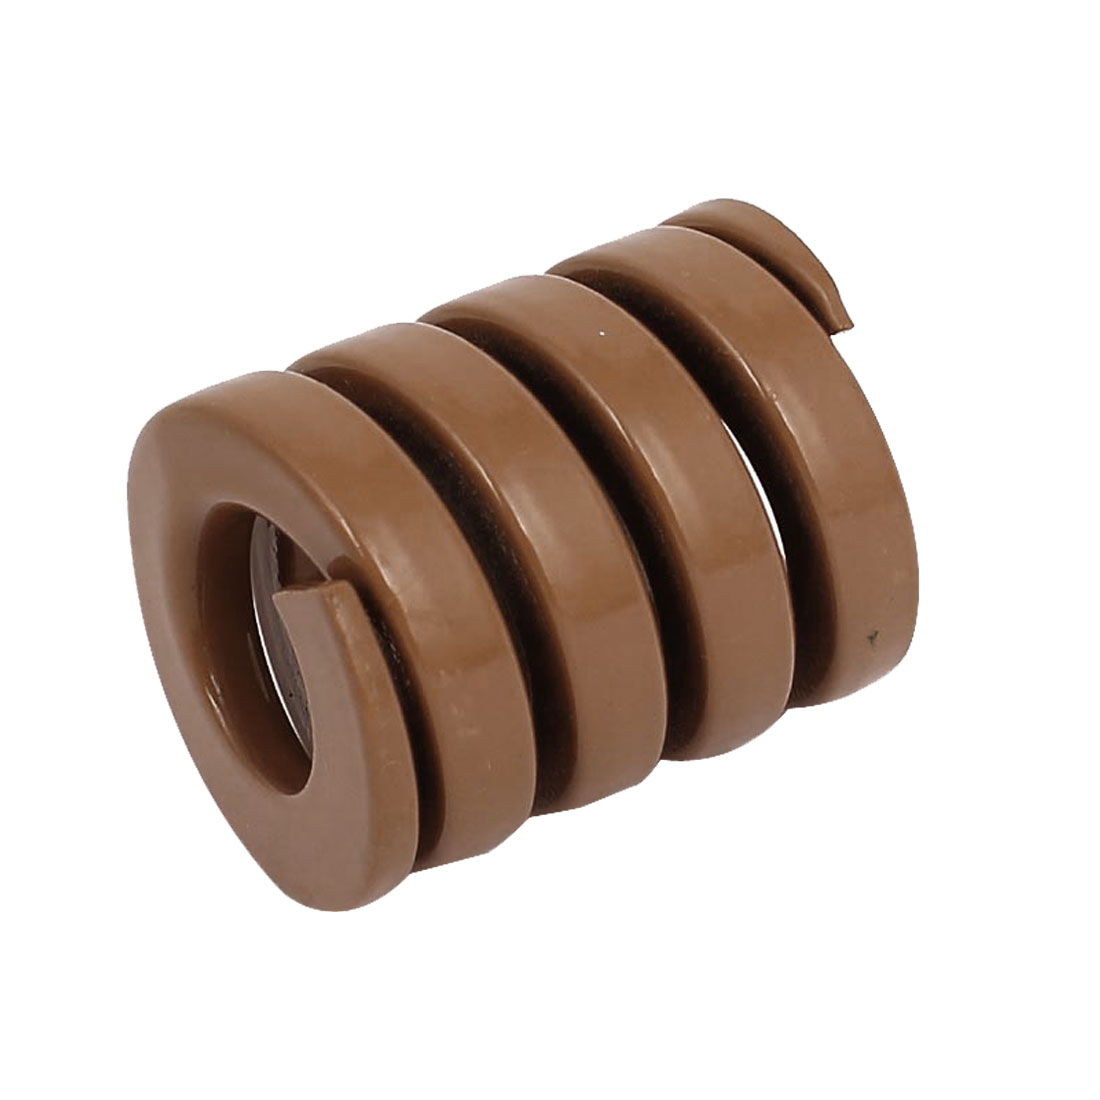 25mm OD 30mm Long Heavy Load Coil Stamping Compression Mold Die Spring Brown